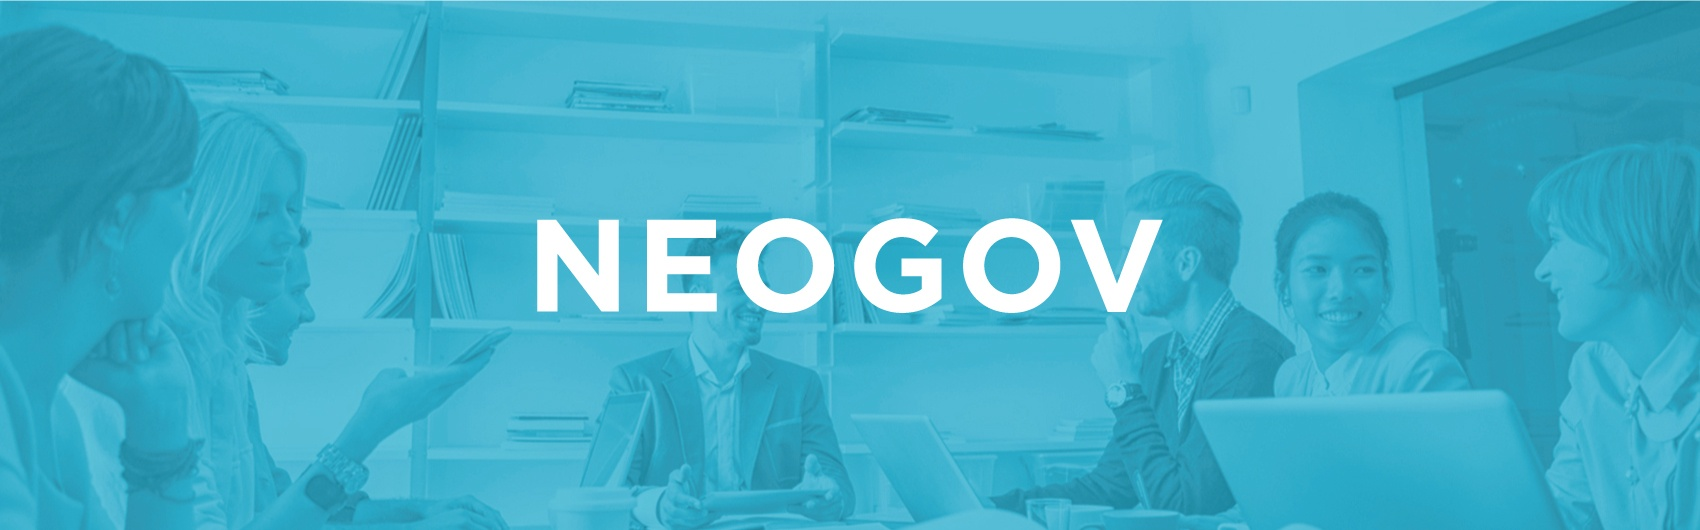 NEOGOV Announces Purchase of High Line Corporation